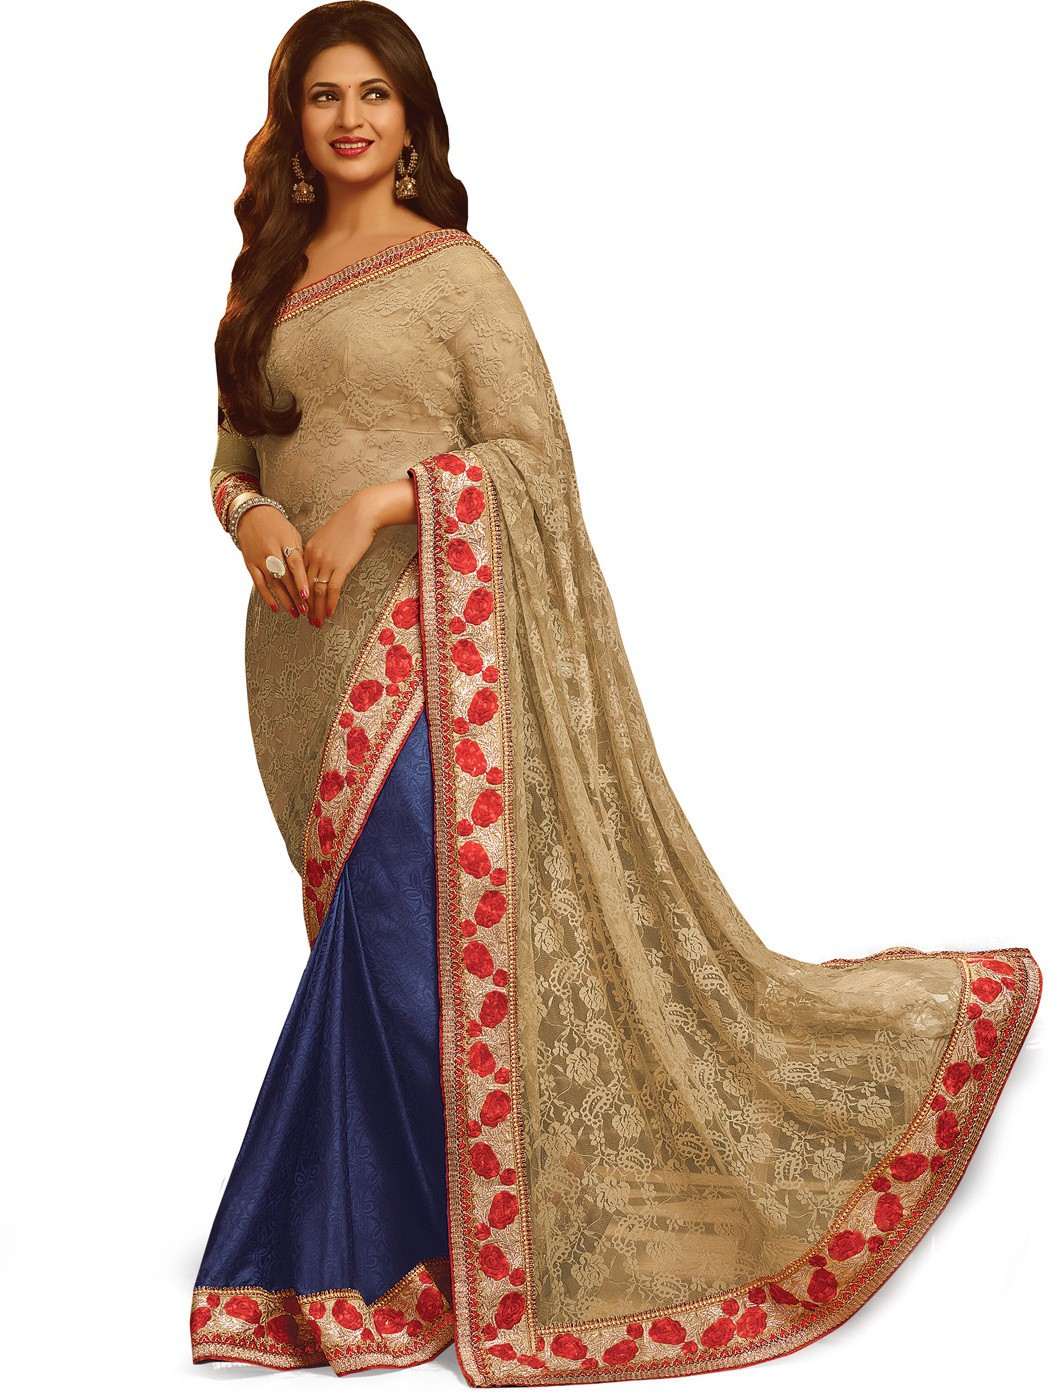 Indianbeauty Self Design, Embroidered Bollywood Jacquard, Chiffon Saree(Beige, Blue)